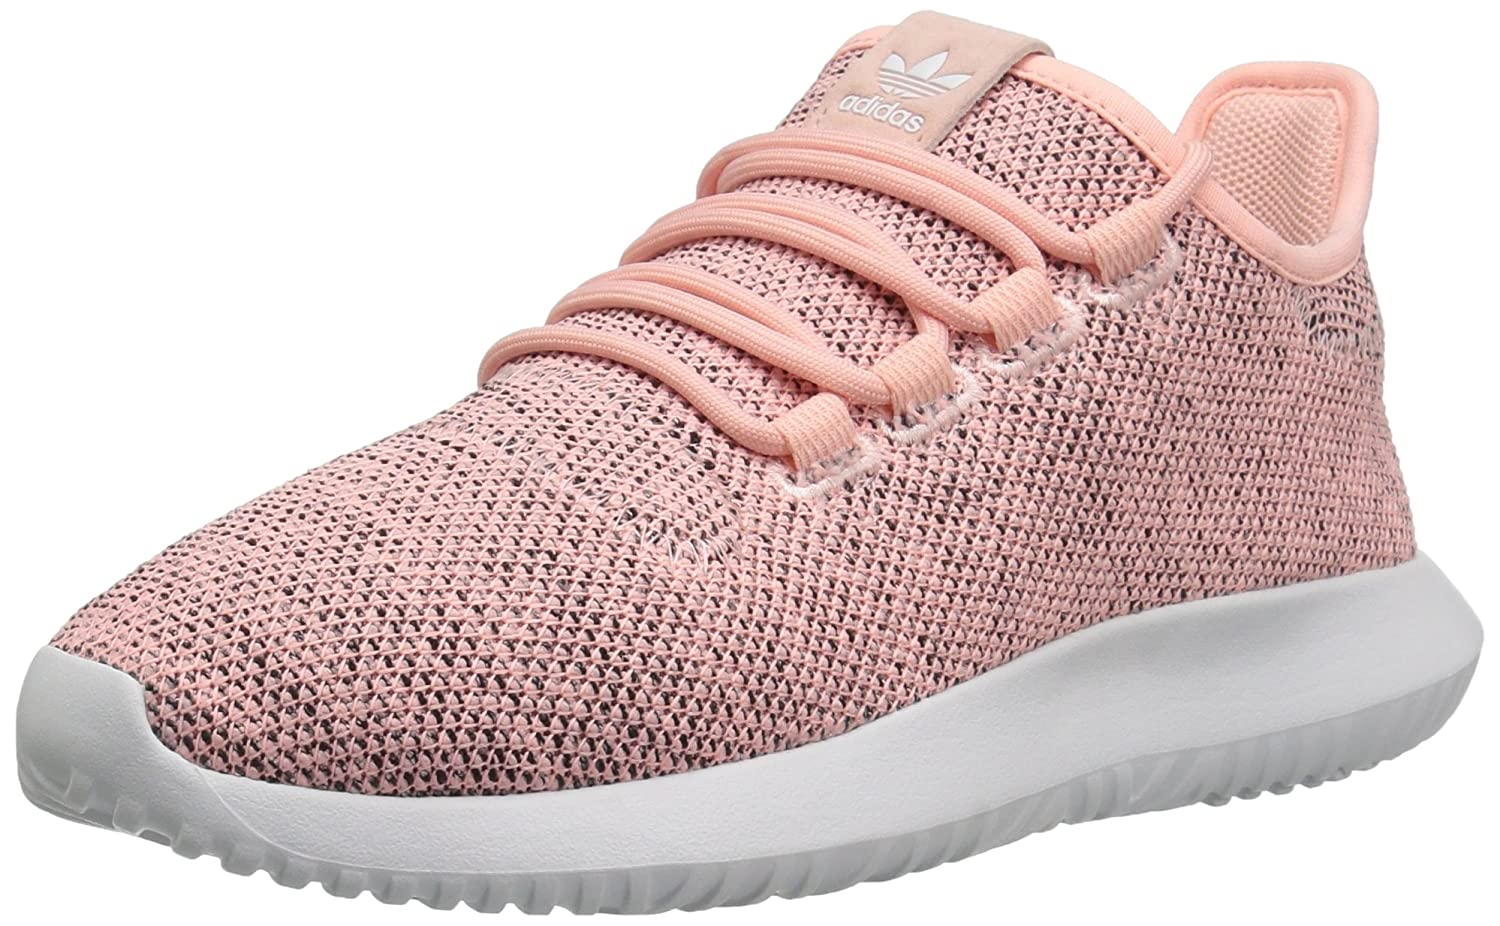 adidas Originals Women's Tubular Shadow W Fashion Sneaker B01LZM7ZPP 9 B(M) US|Haze Coral/Light Onix/Black